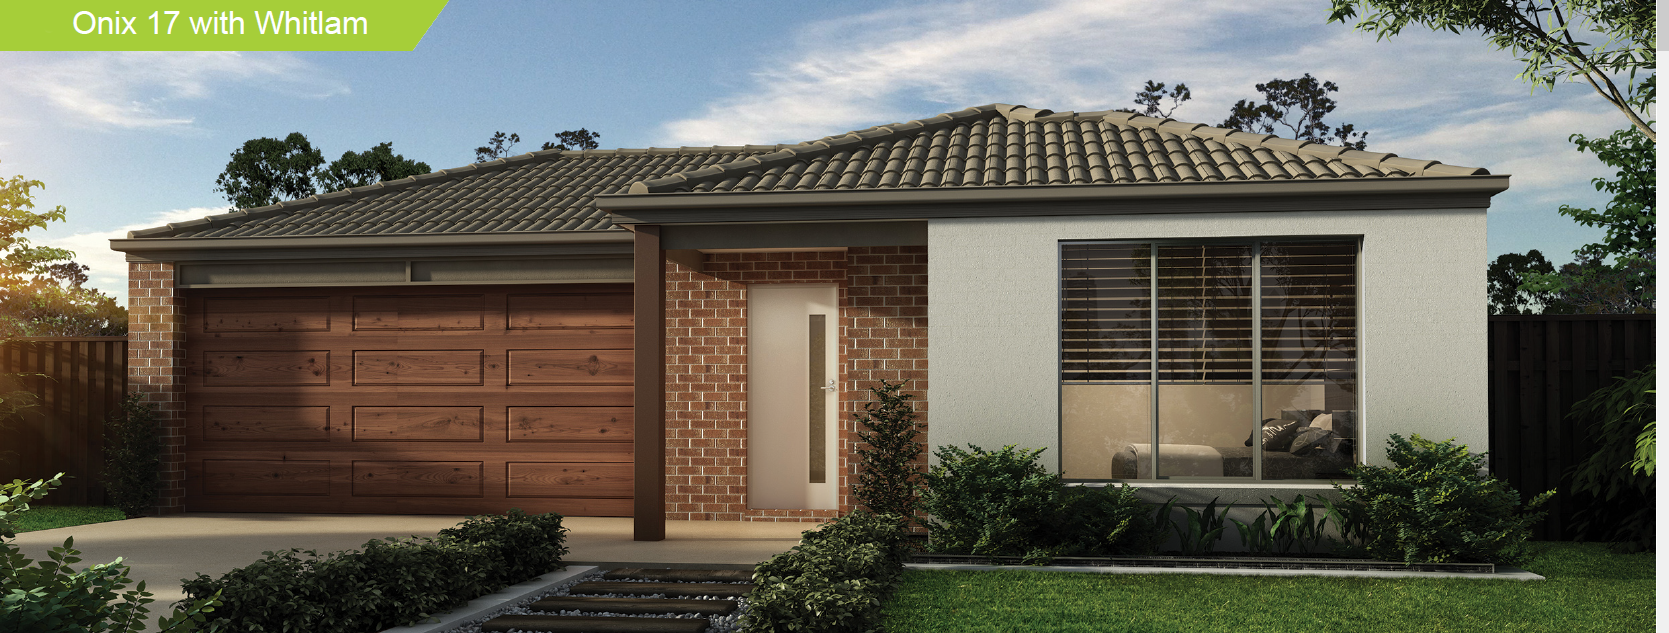 Lot 818 - Mambourin - Onix 17_Whitlam facade